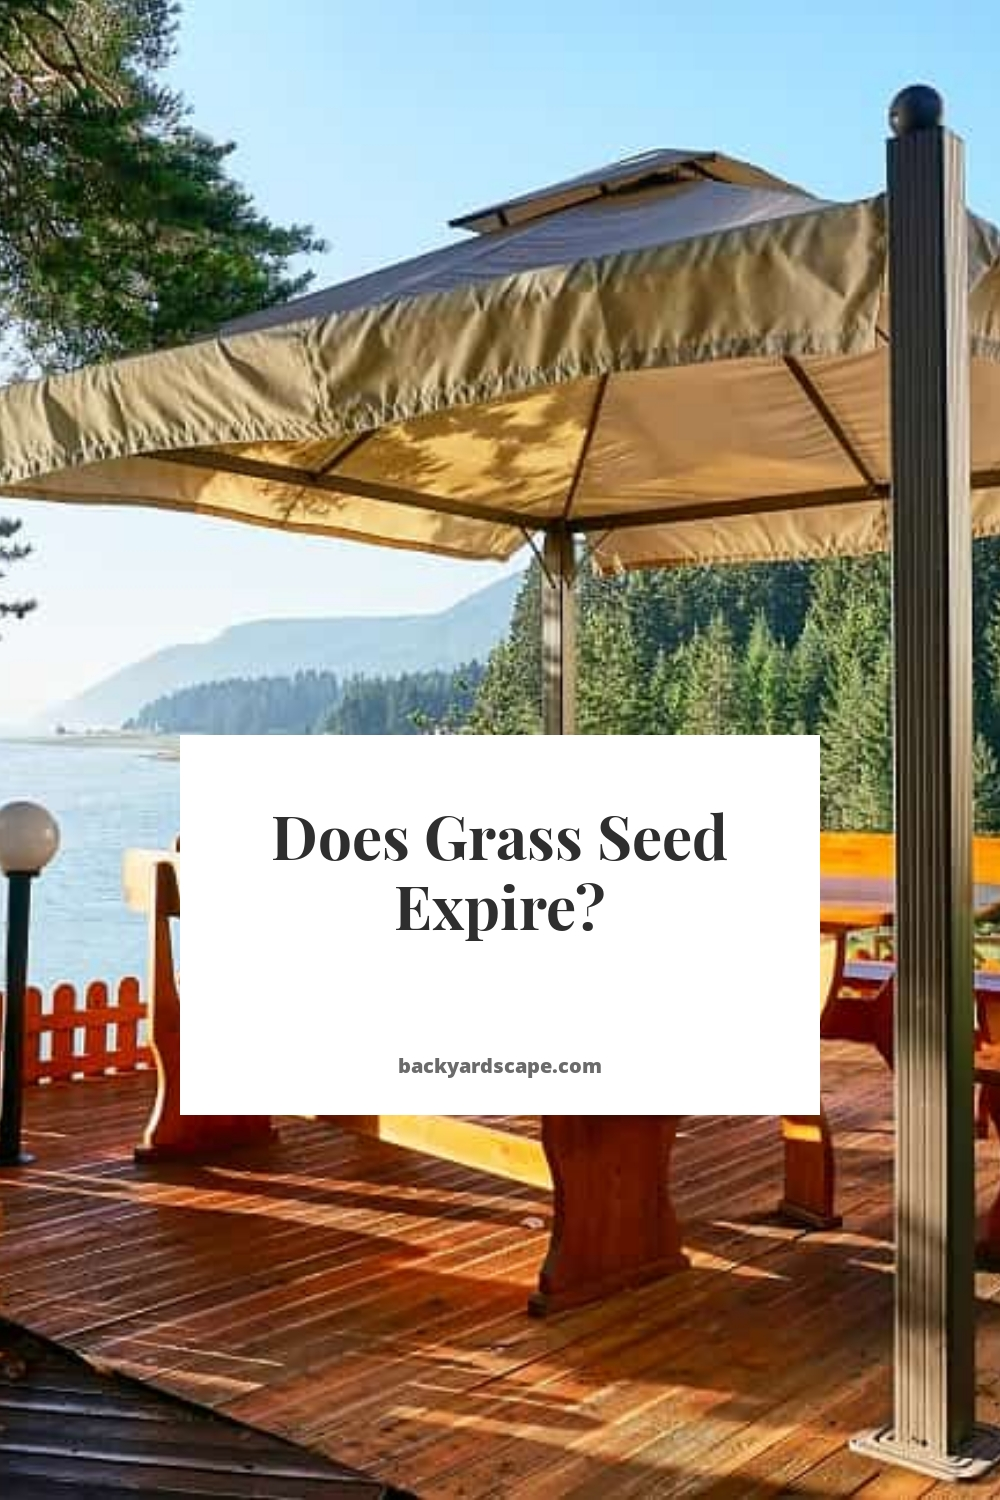 Does Grass Seed Expire?